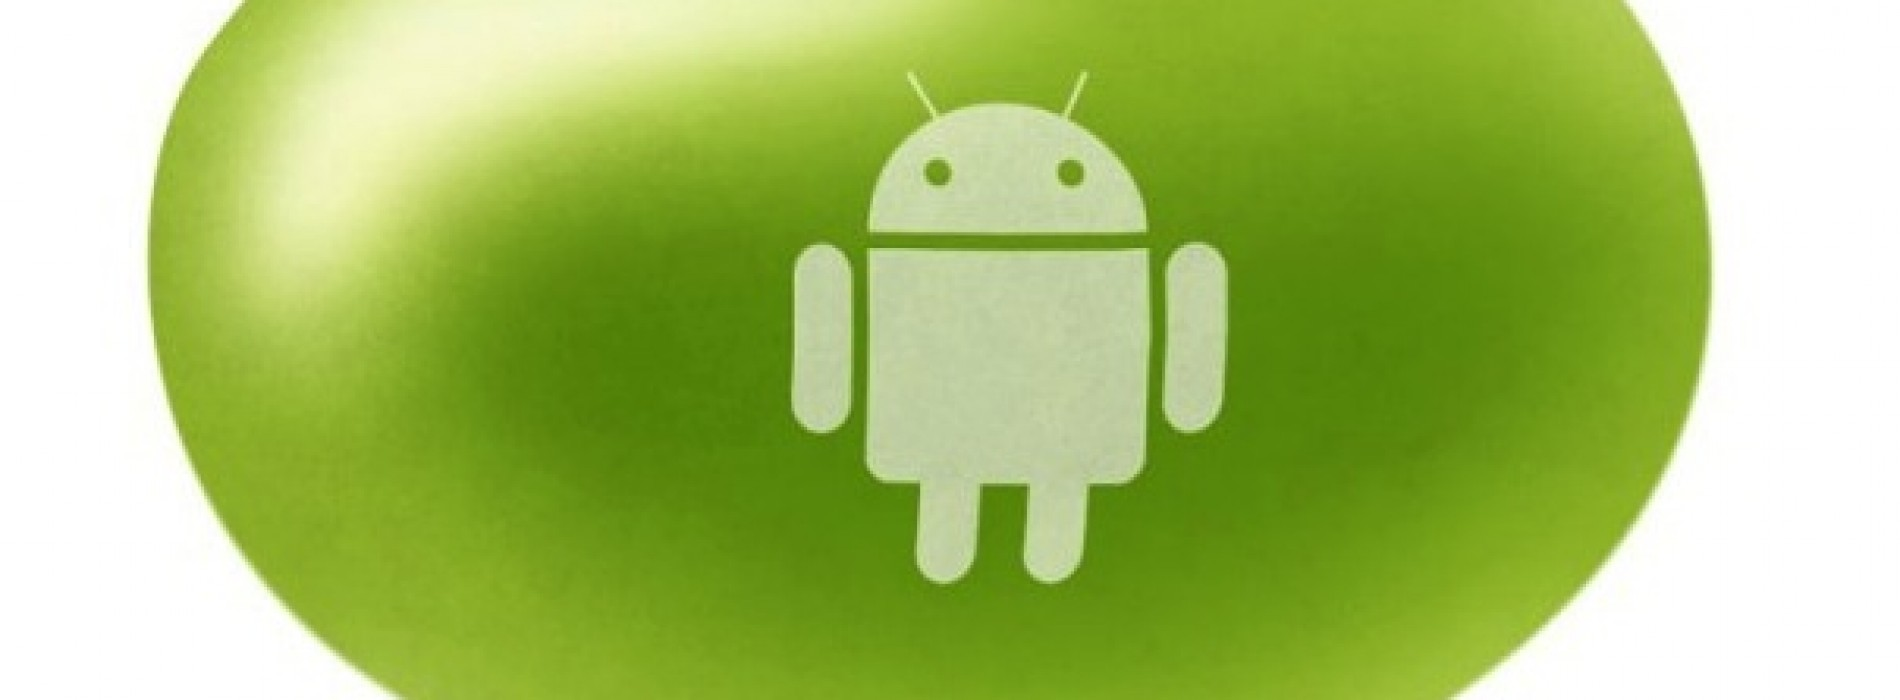 Google releases Jelly Bean OTA to HSPA+ Galaxy Nexus, promises other devices to come